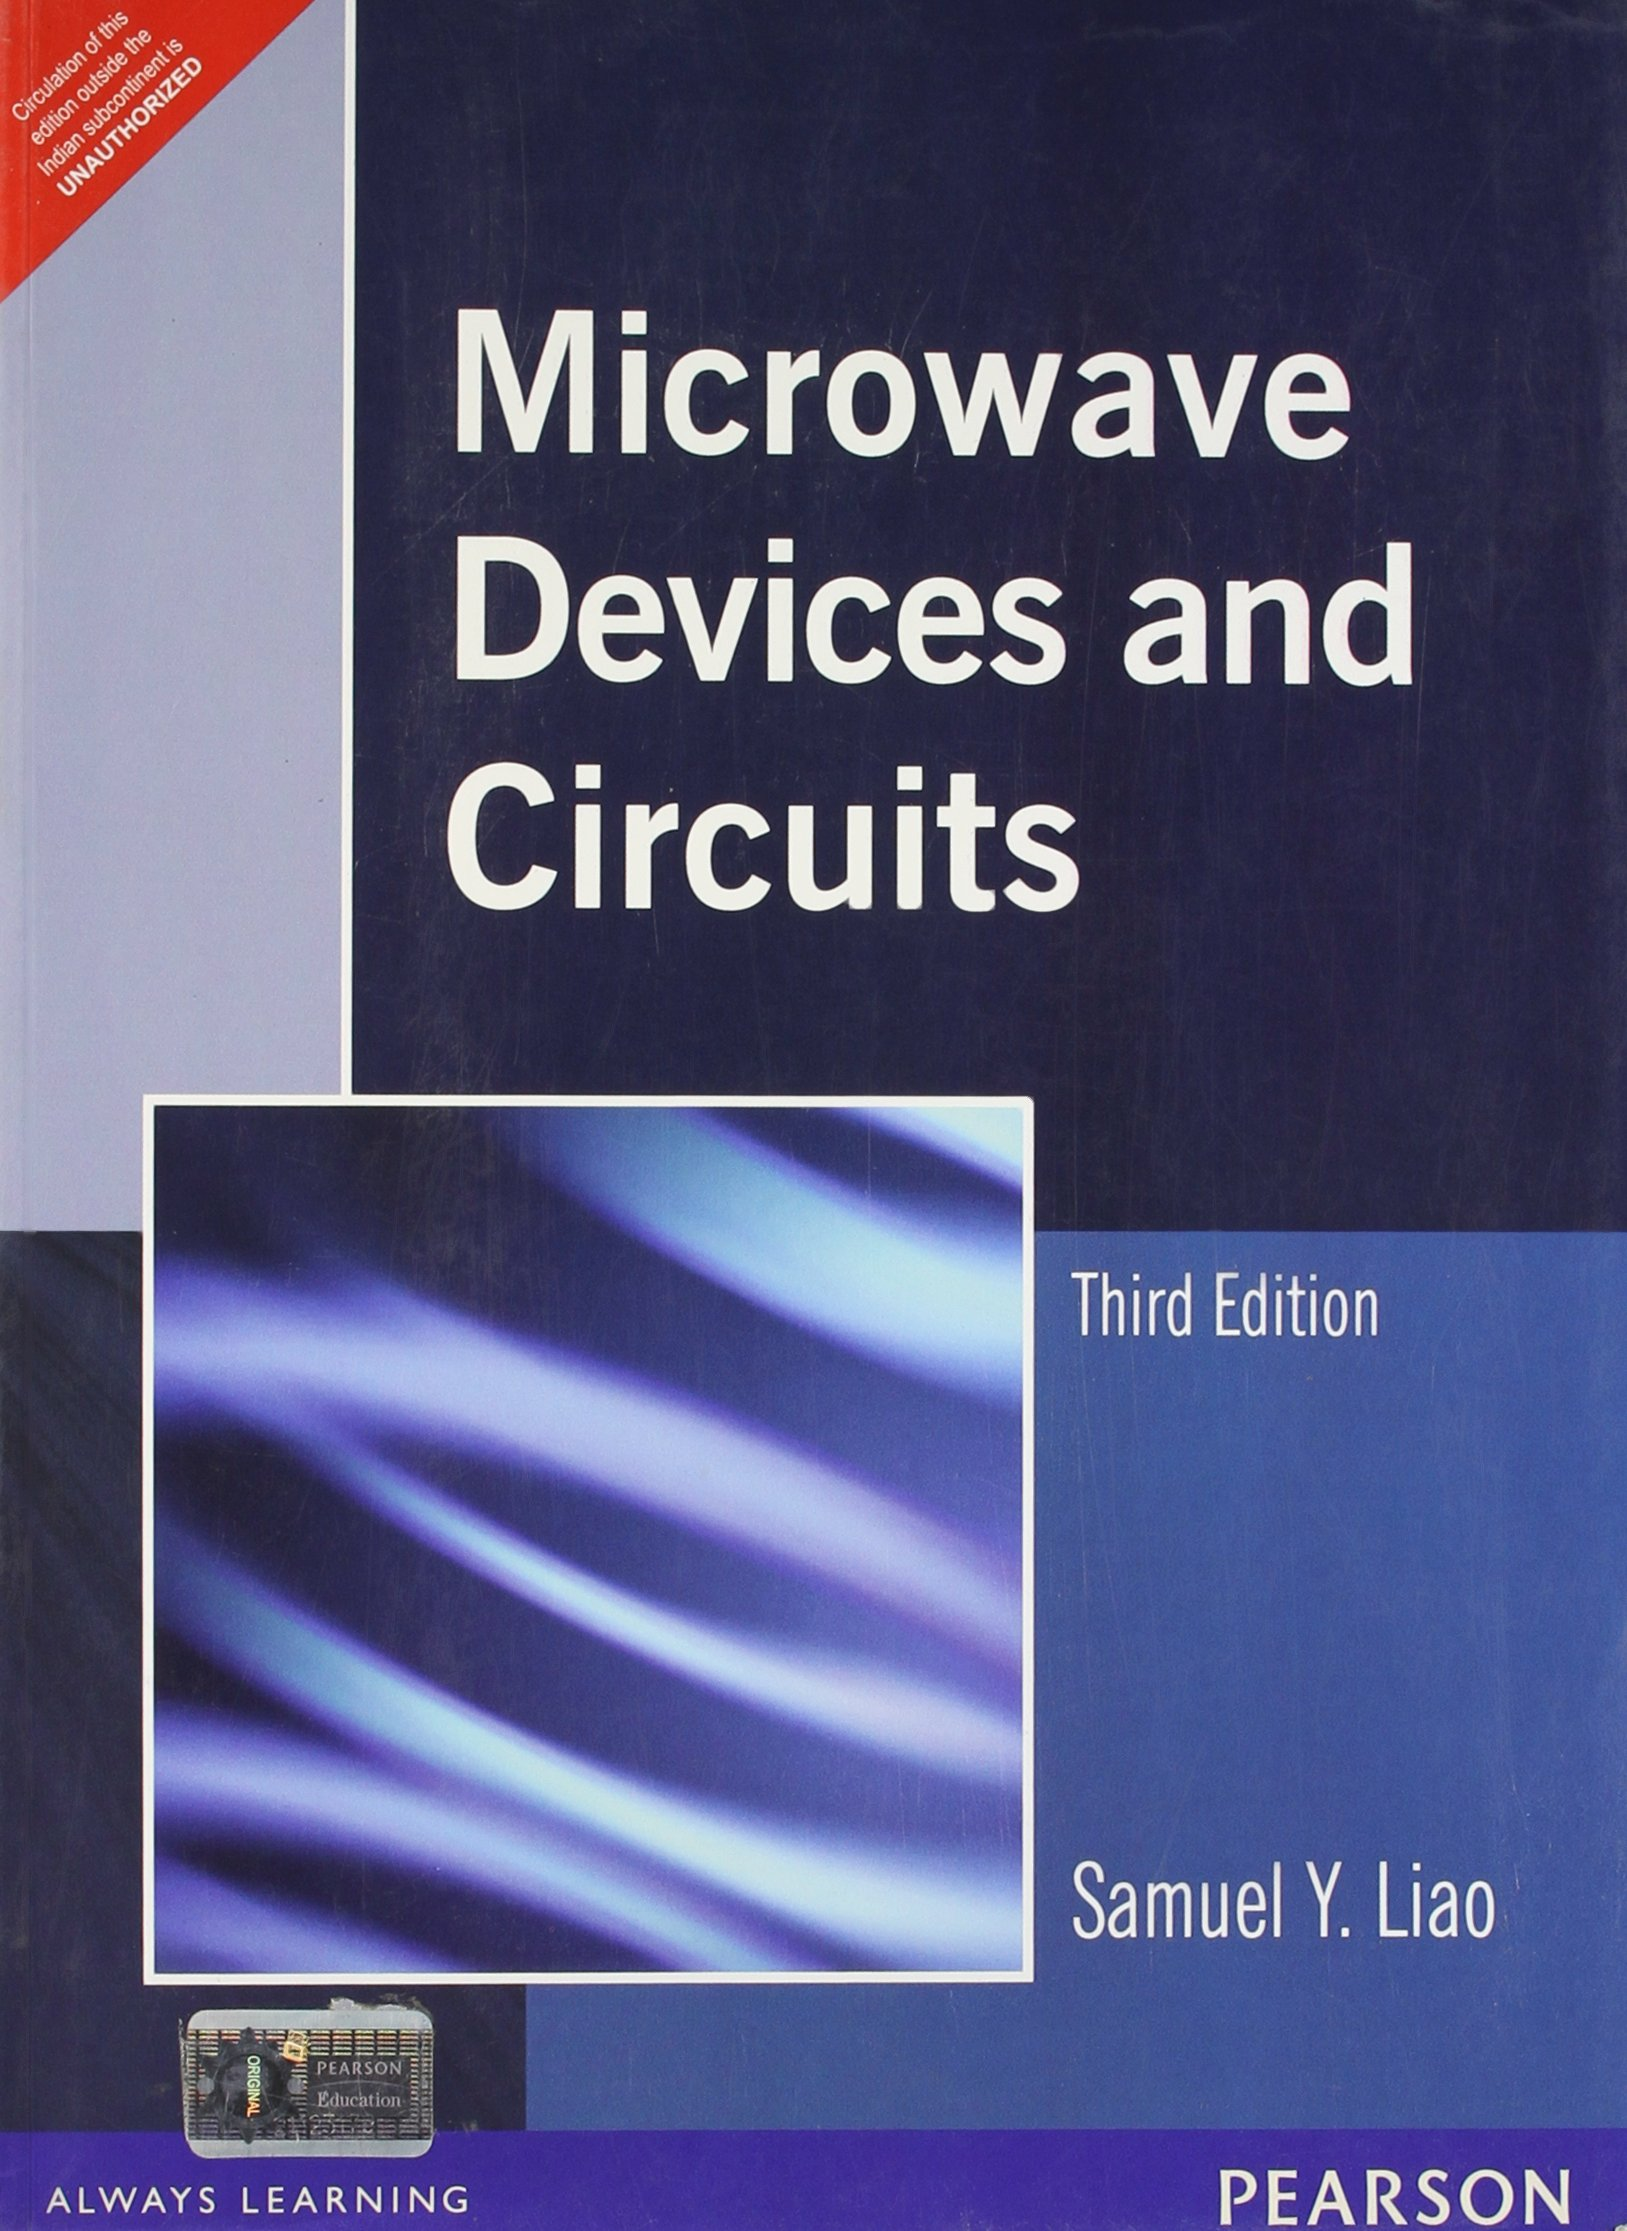 Pdf Microwave Devices And Circuits By Samuel Y Liao Book Free Electronic Circuit Design Textbook Download Easyengineering